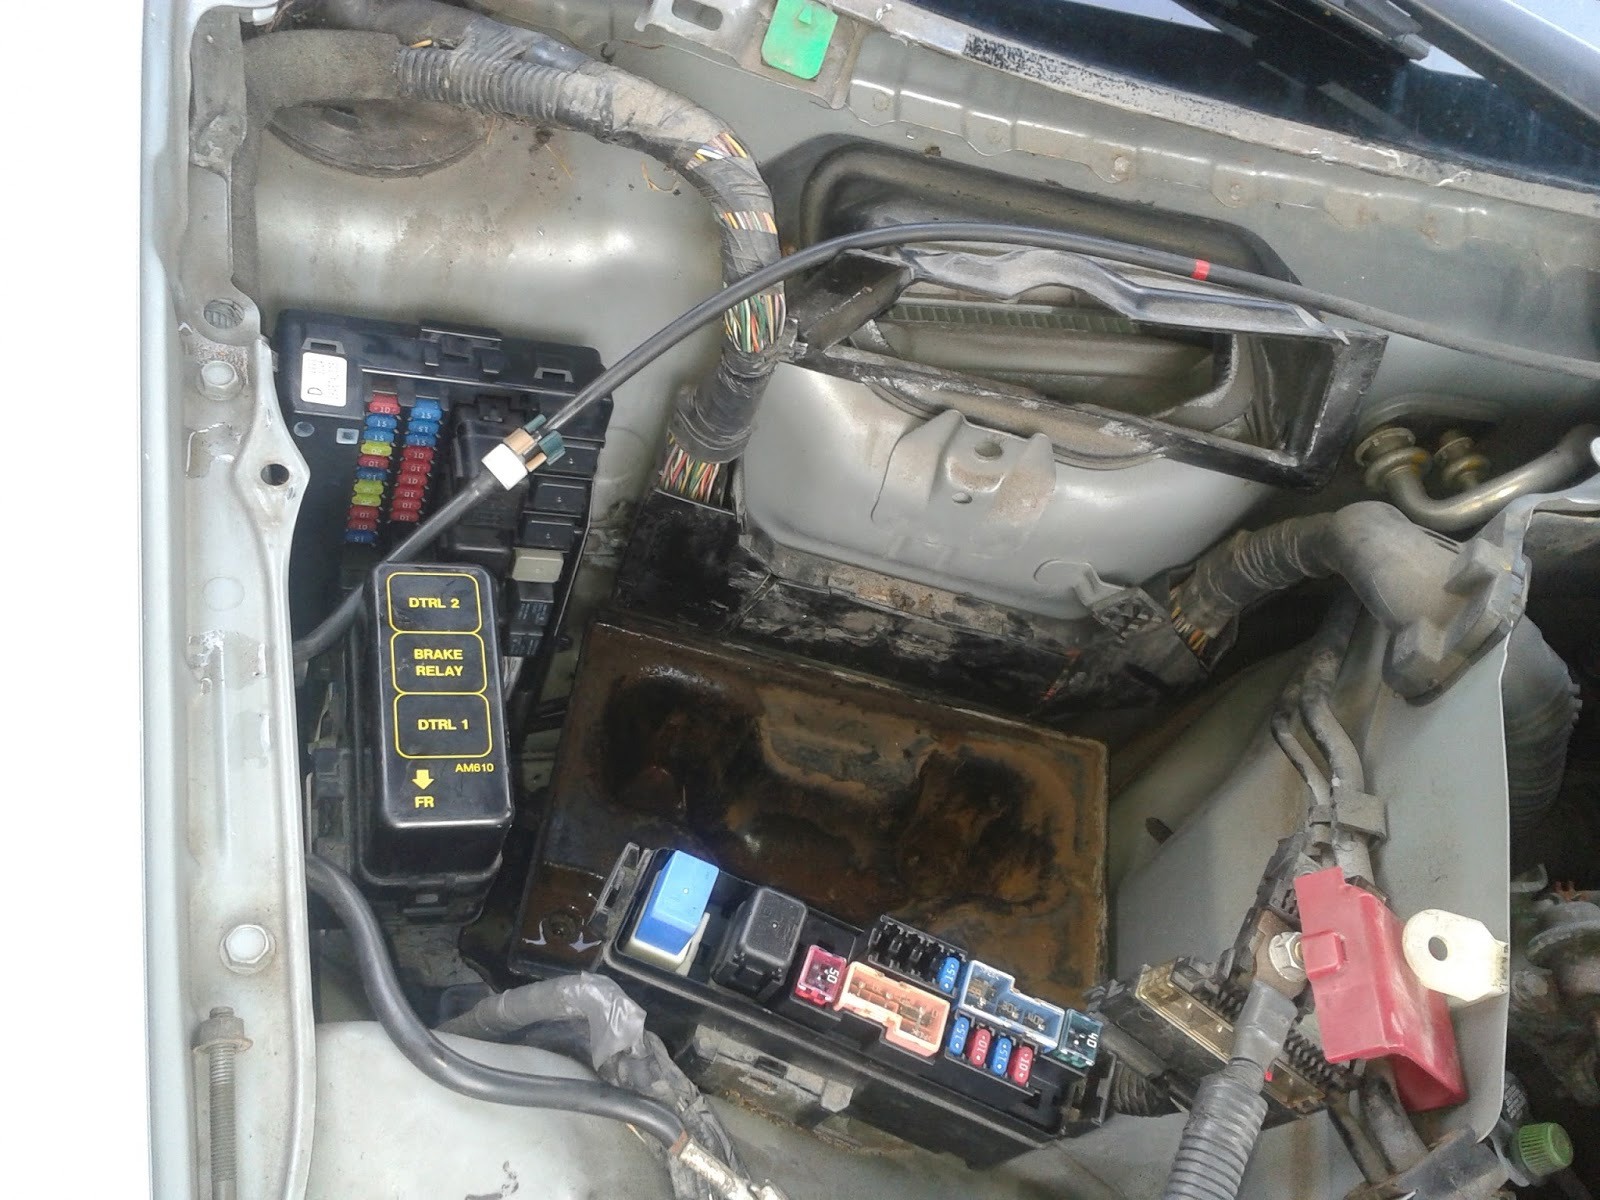 2015 05 27%2B18.55.50 zf inifiniti g35 2003 wet ipdm issue, how to fix it 2005 infiniti g35 fuse box location at aneh.co